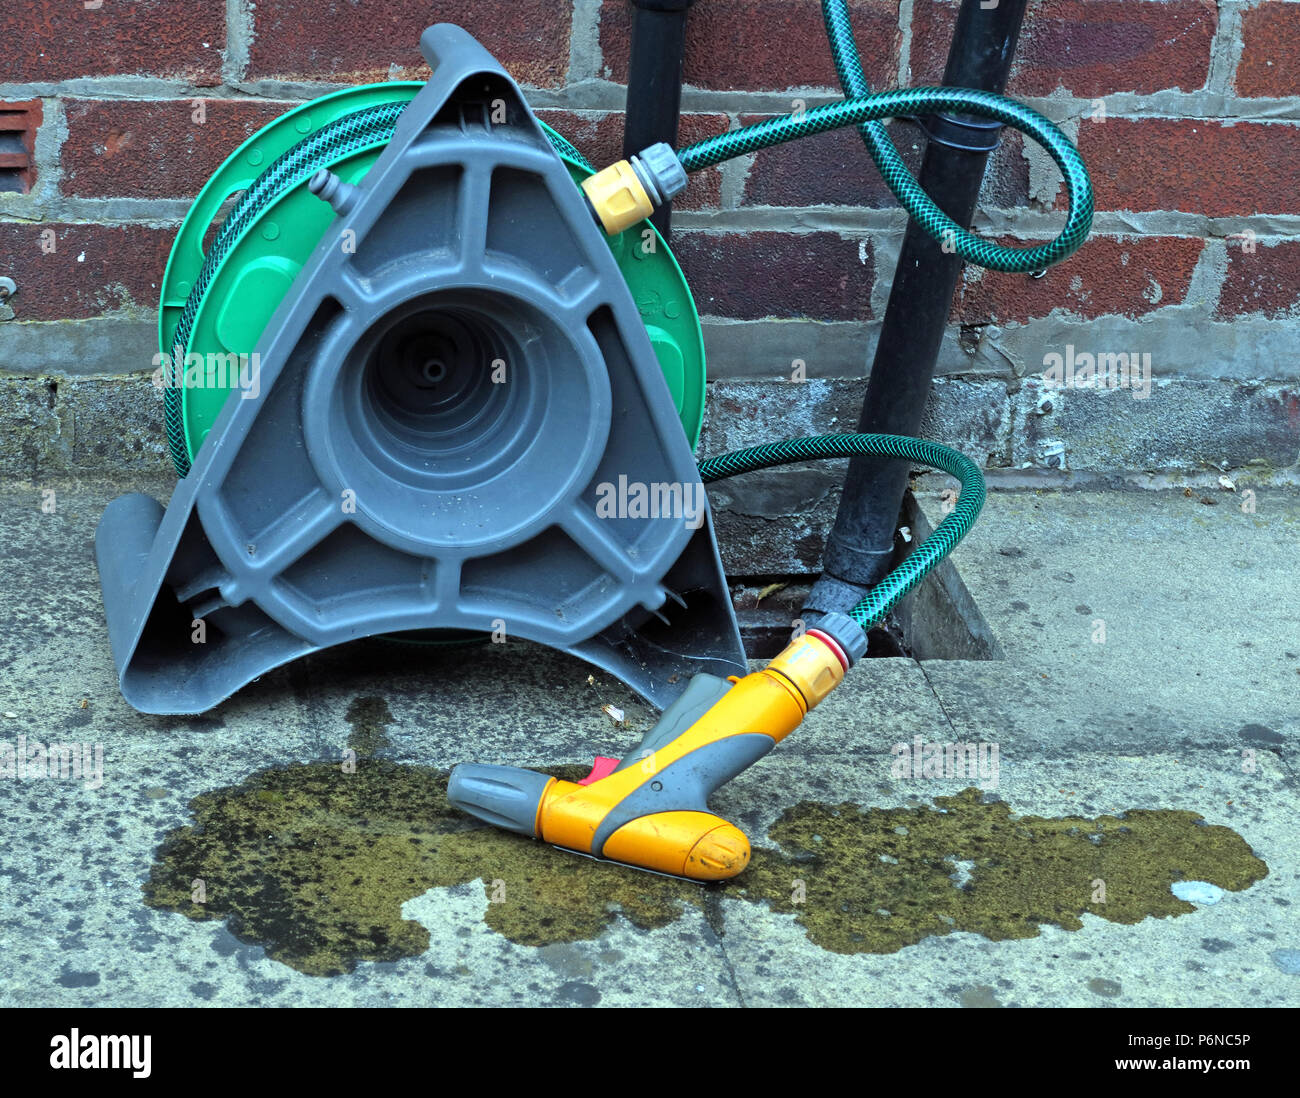 Hosepipe reel connected to a standpipe in garden, with leaking water - Stock Image